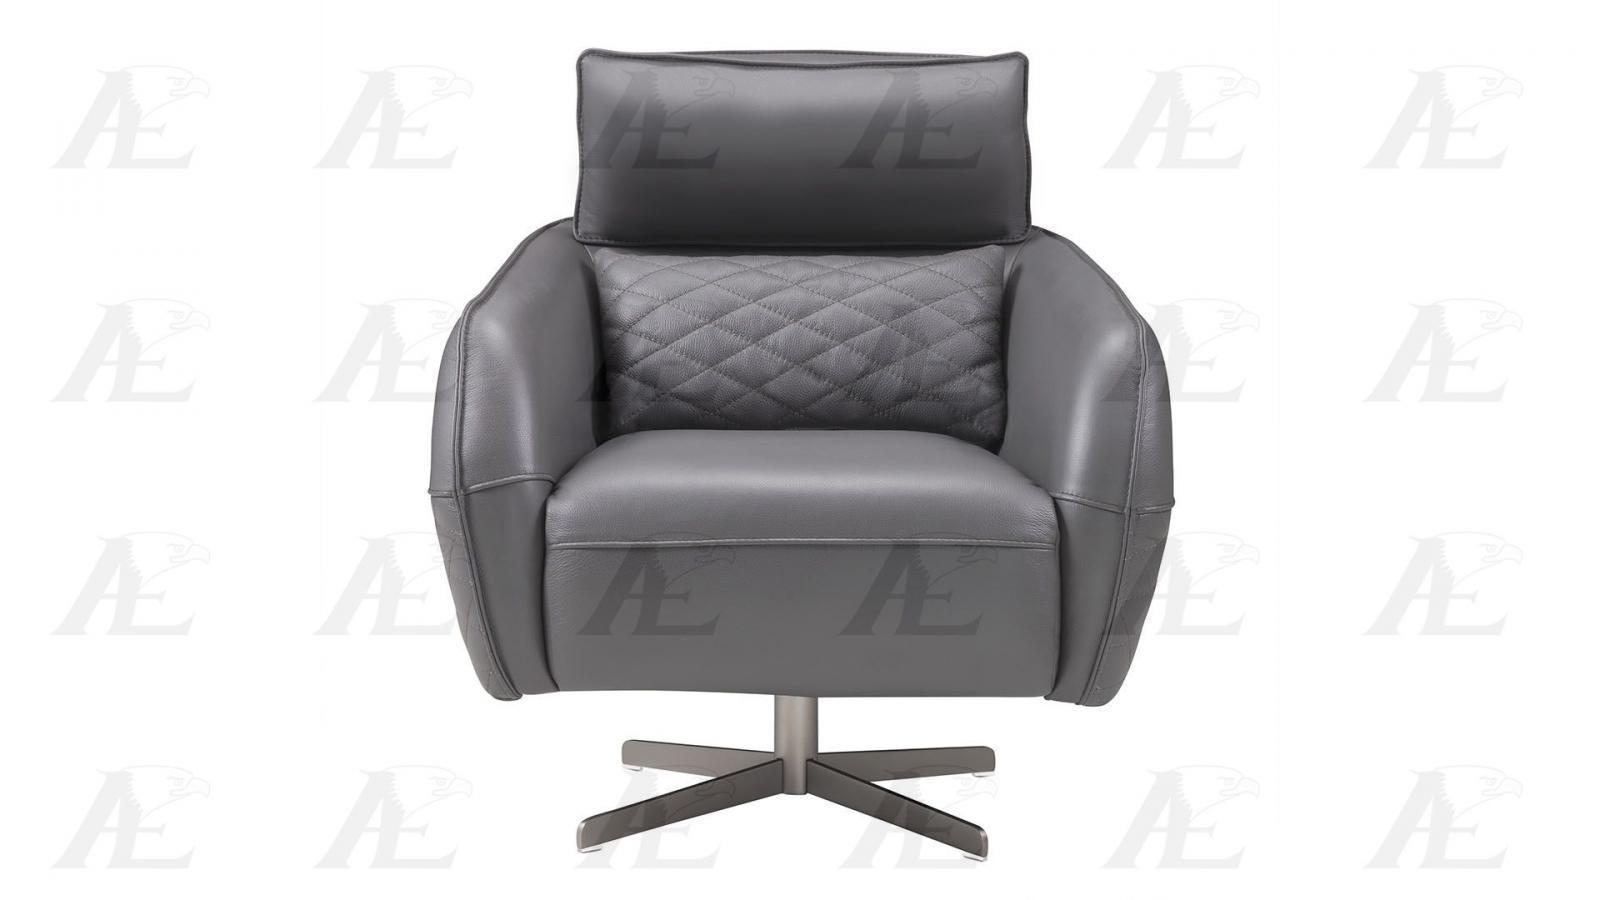 American Eagle EK-CH06A-GR Dark Gray Full Italian Leather Swivel Accent Chair